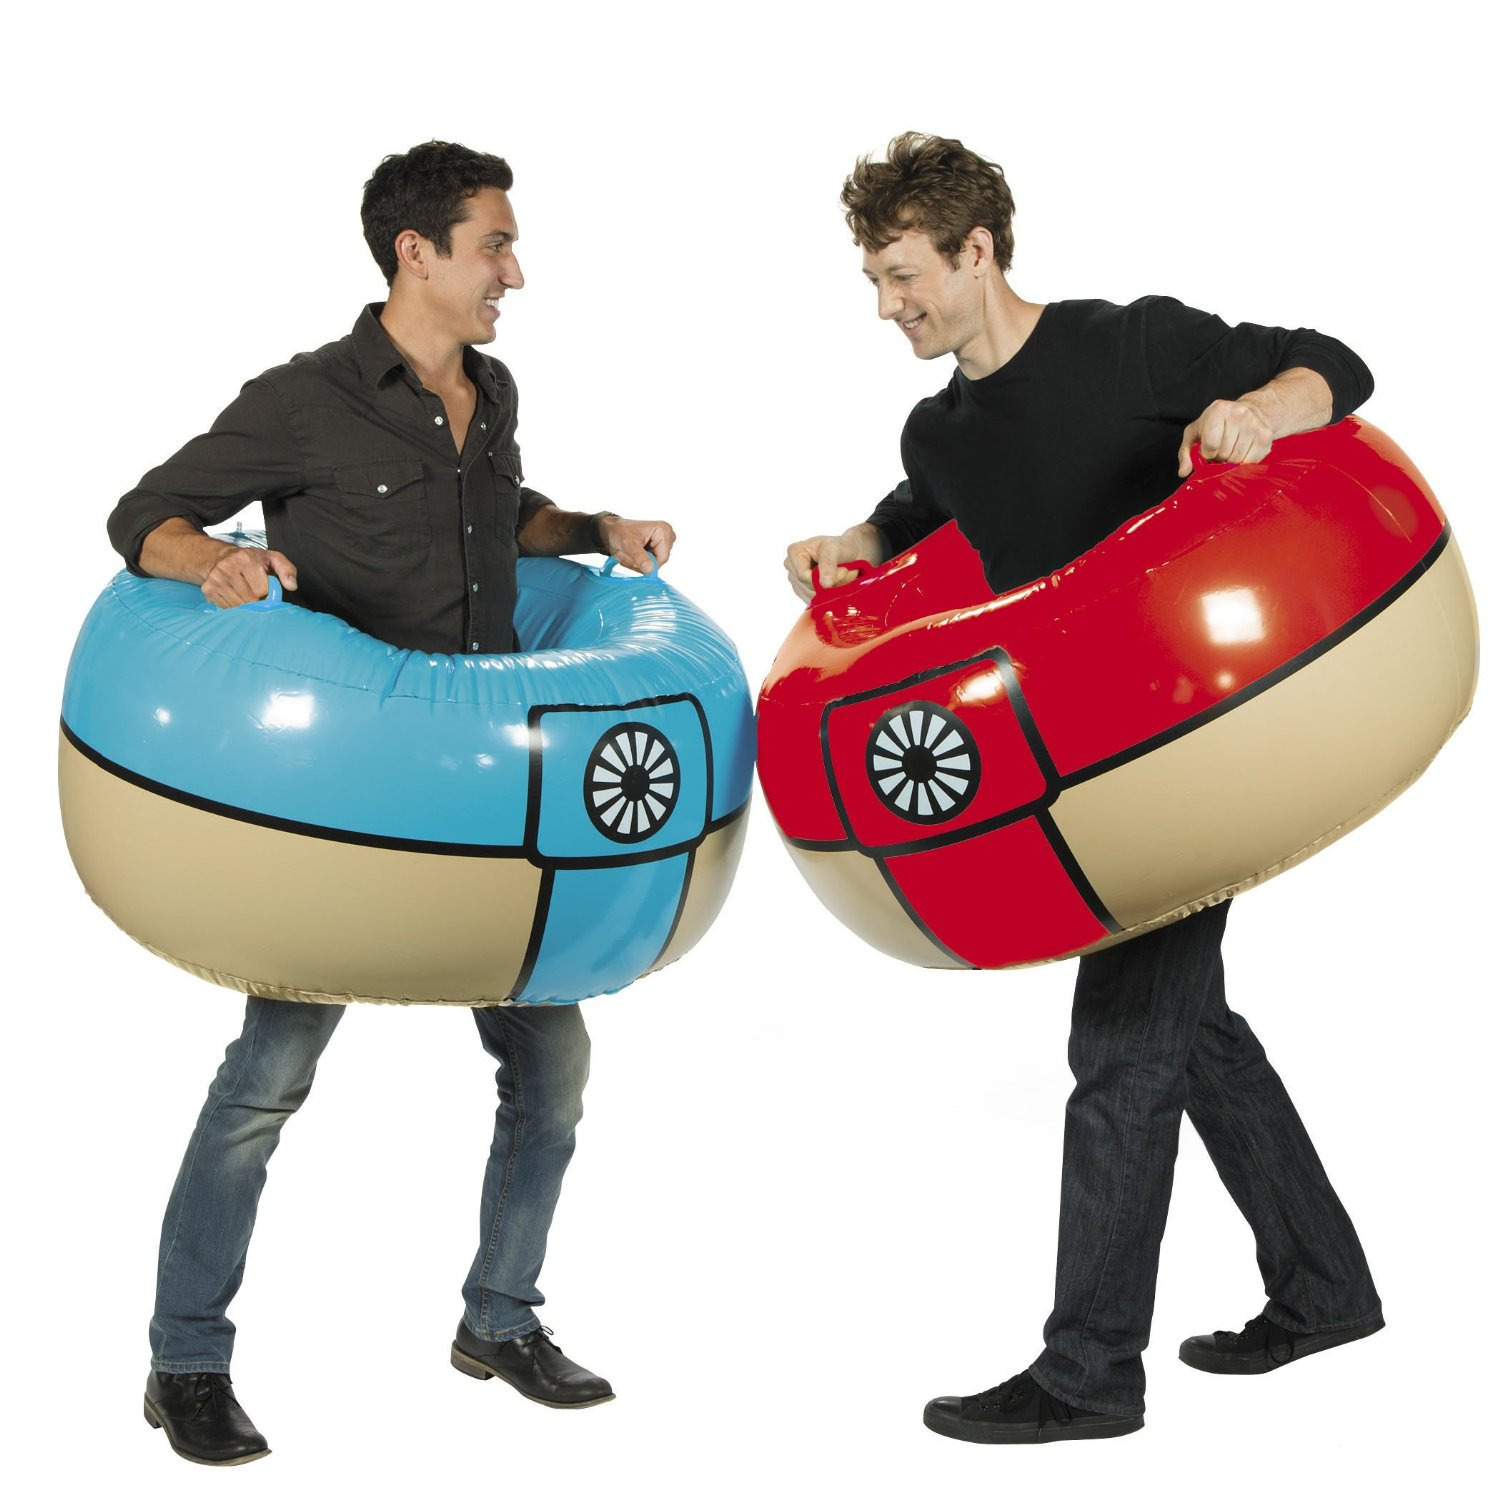 Socker Boppers Sumo: Inflatable Body Boppers Novelty Vinyl Wrestling Bop Sumo